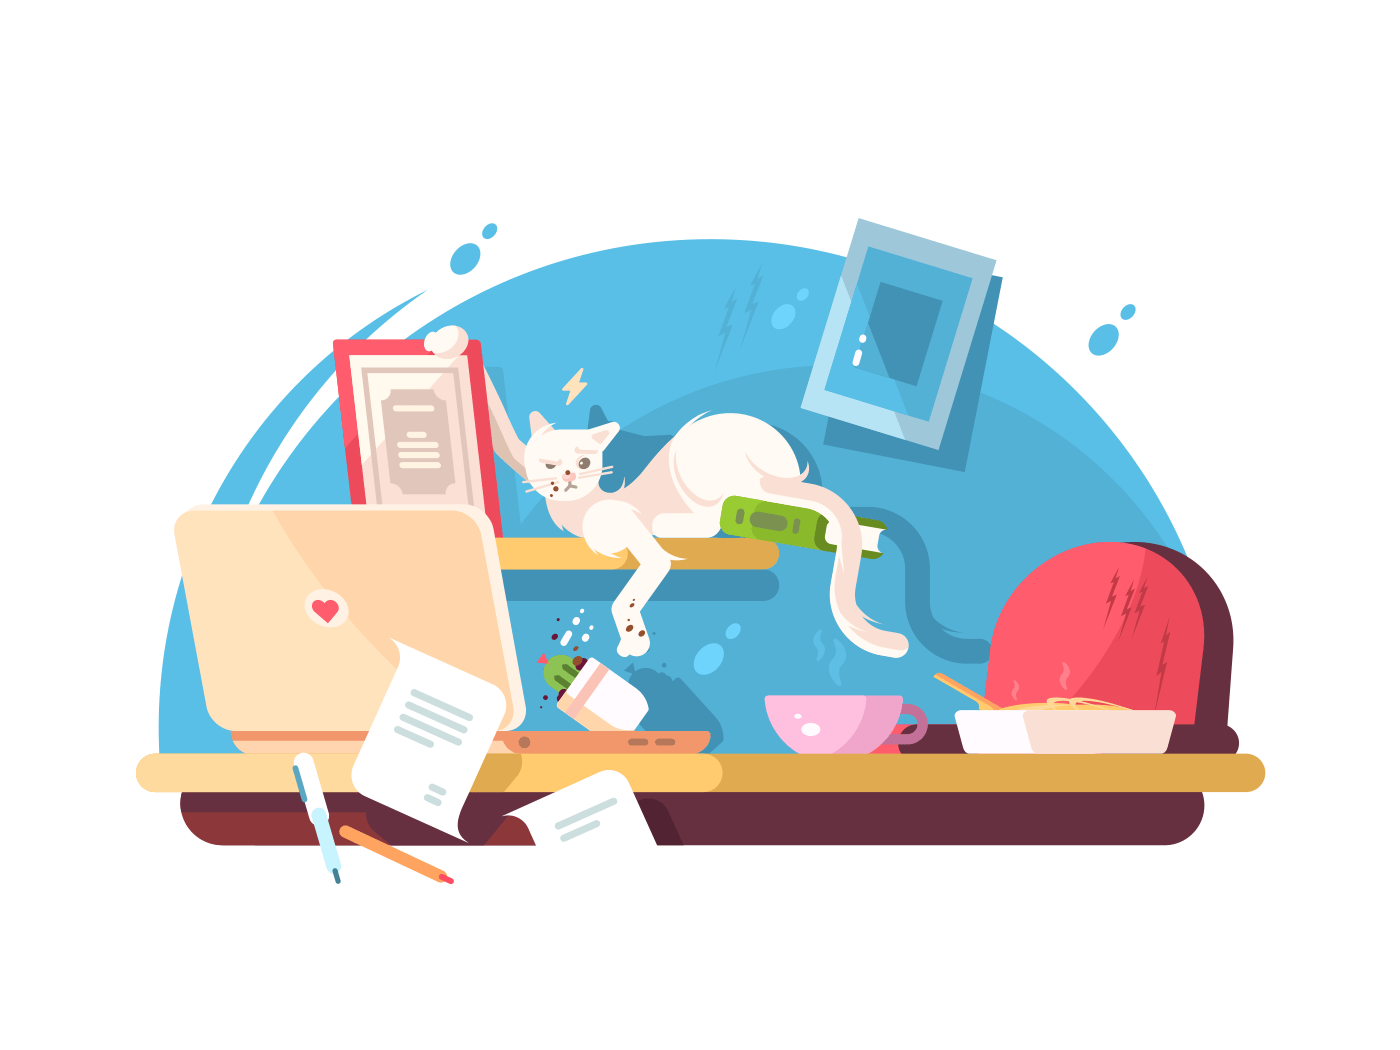 Cute cat and mess in workplace illustration